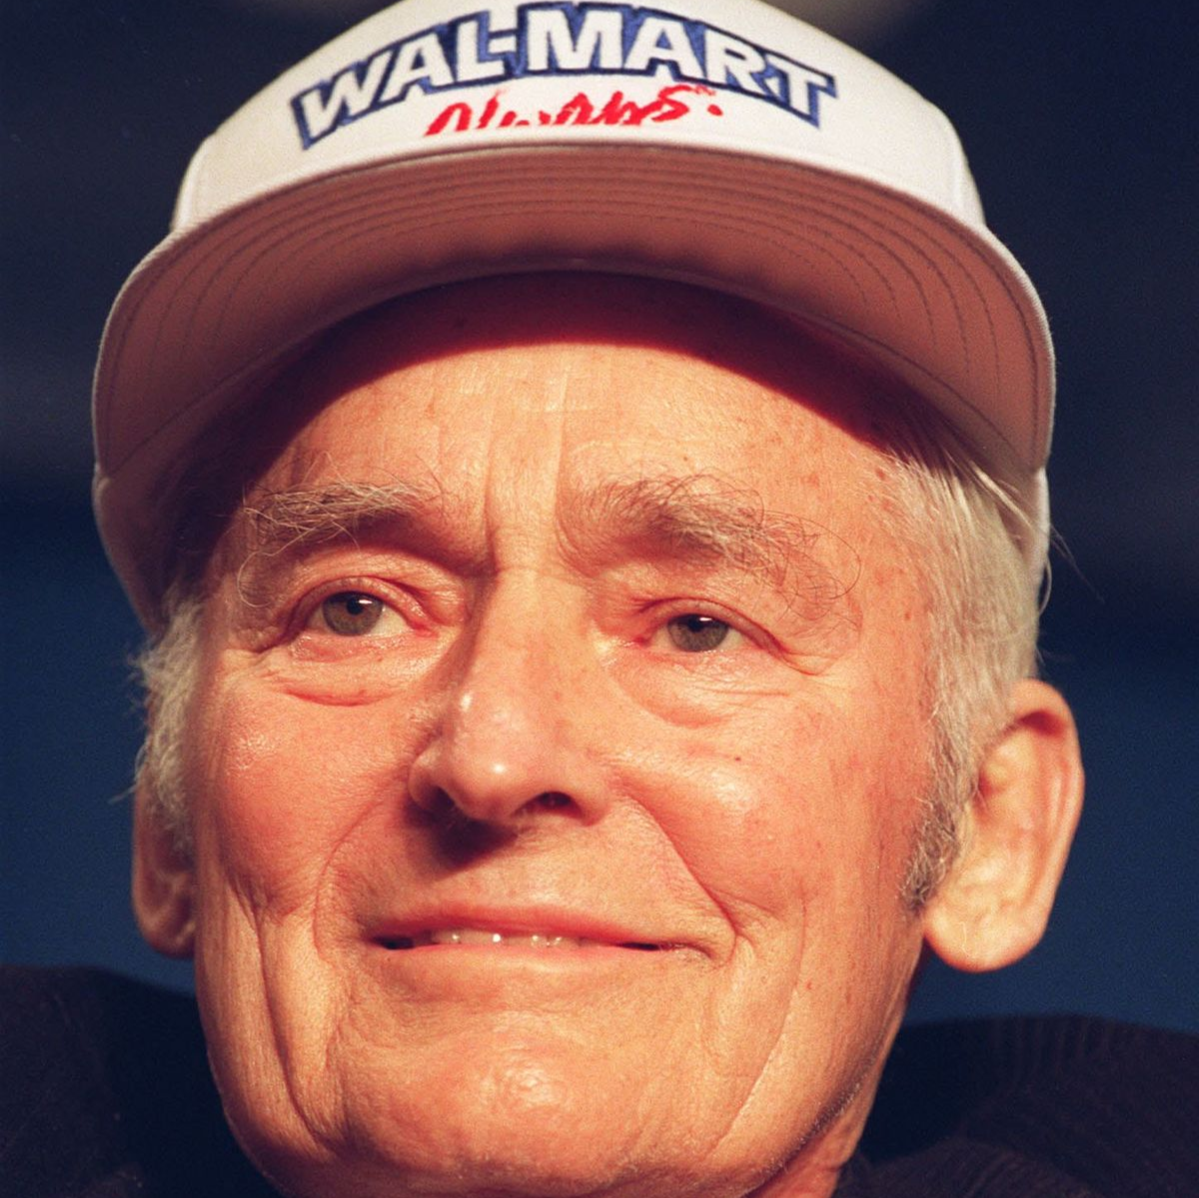 Sam Walton, founder of Wal-Mart, US retail chain, shown in a photo dated 05 April 1992 taken in Little Rock.